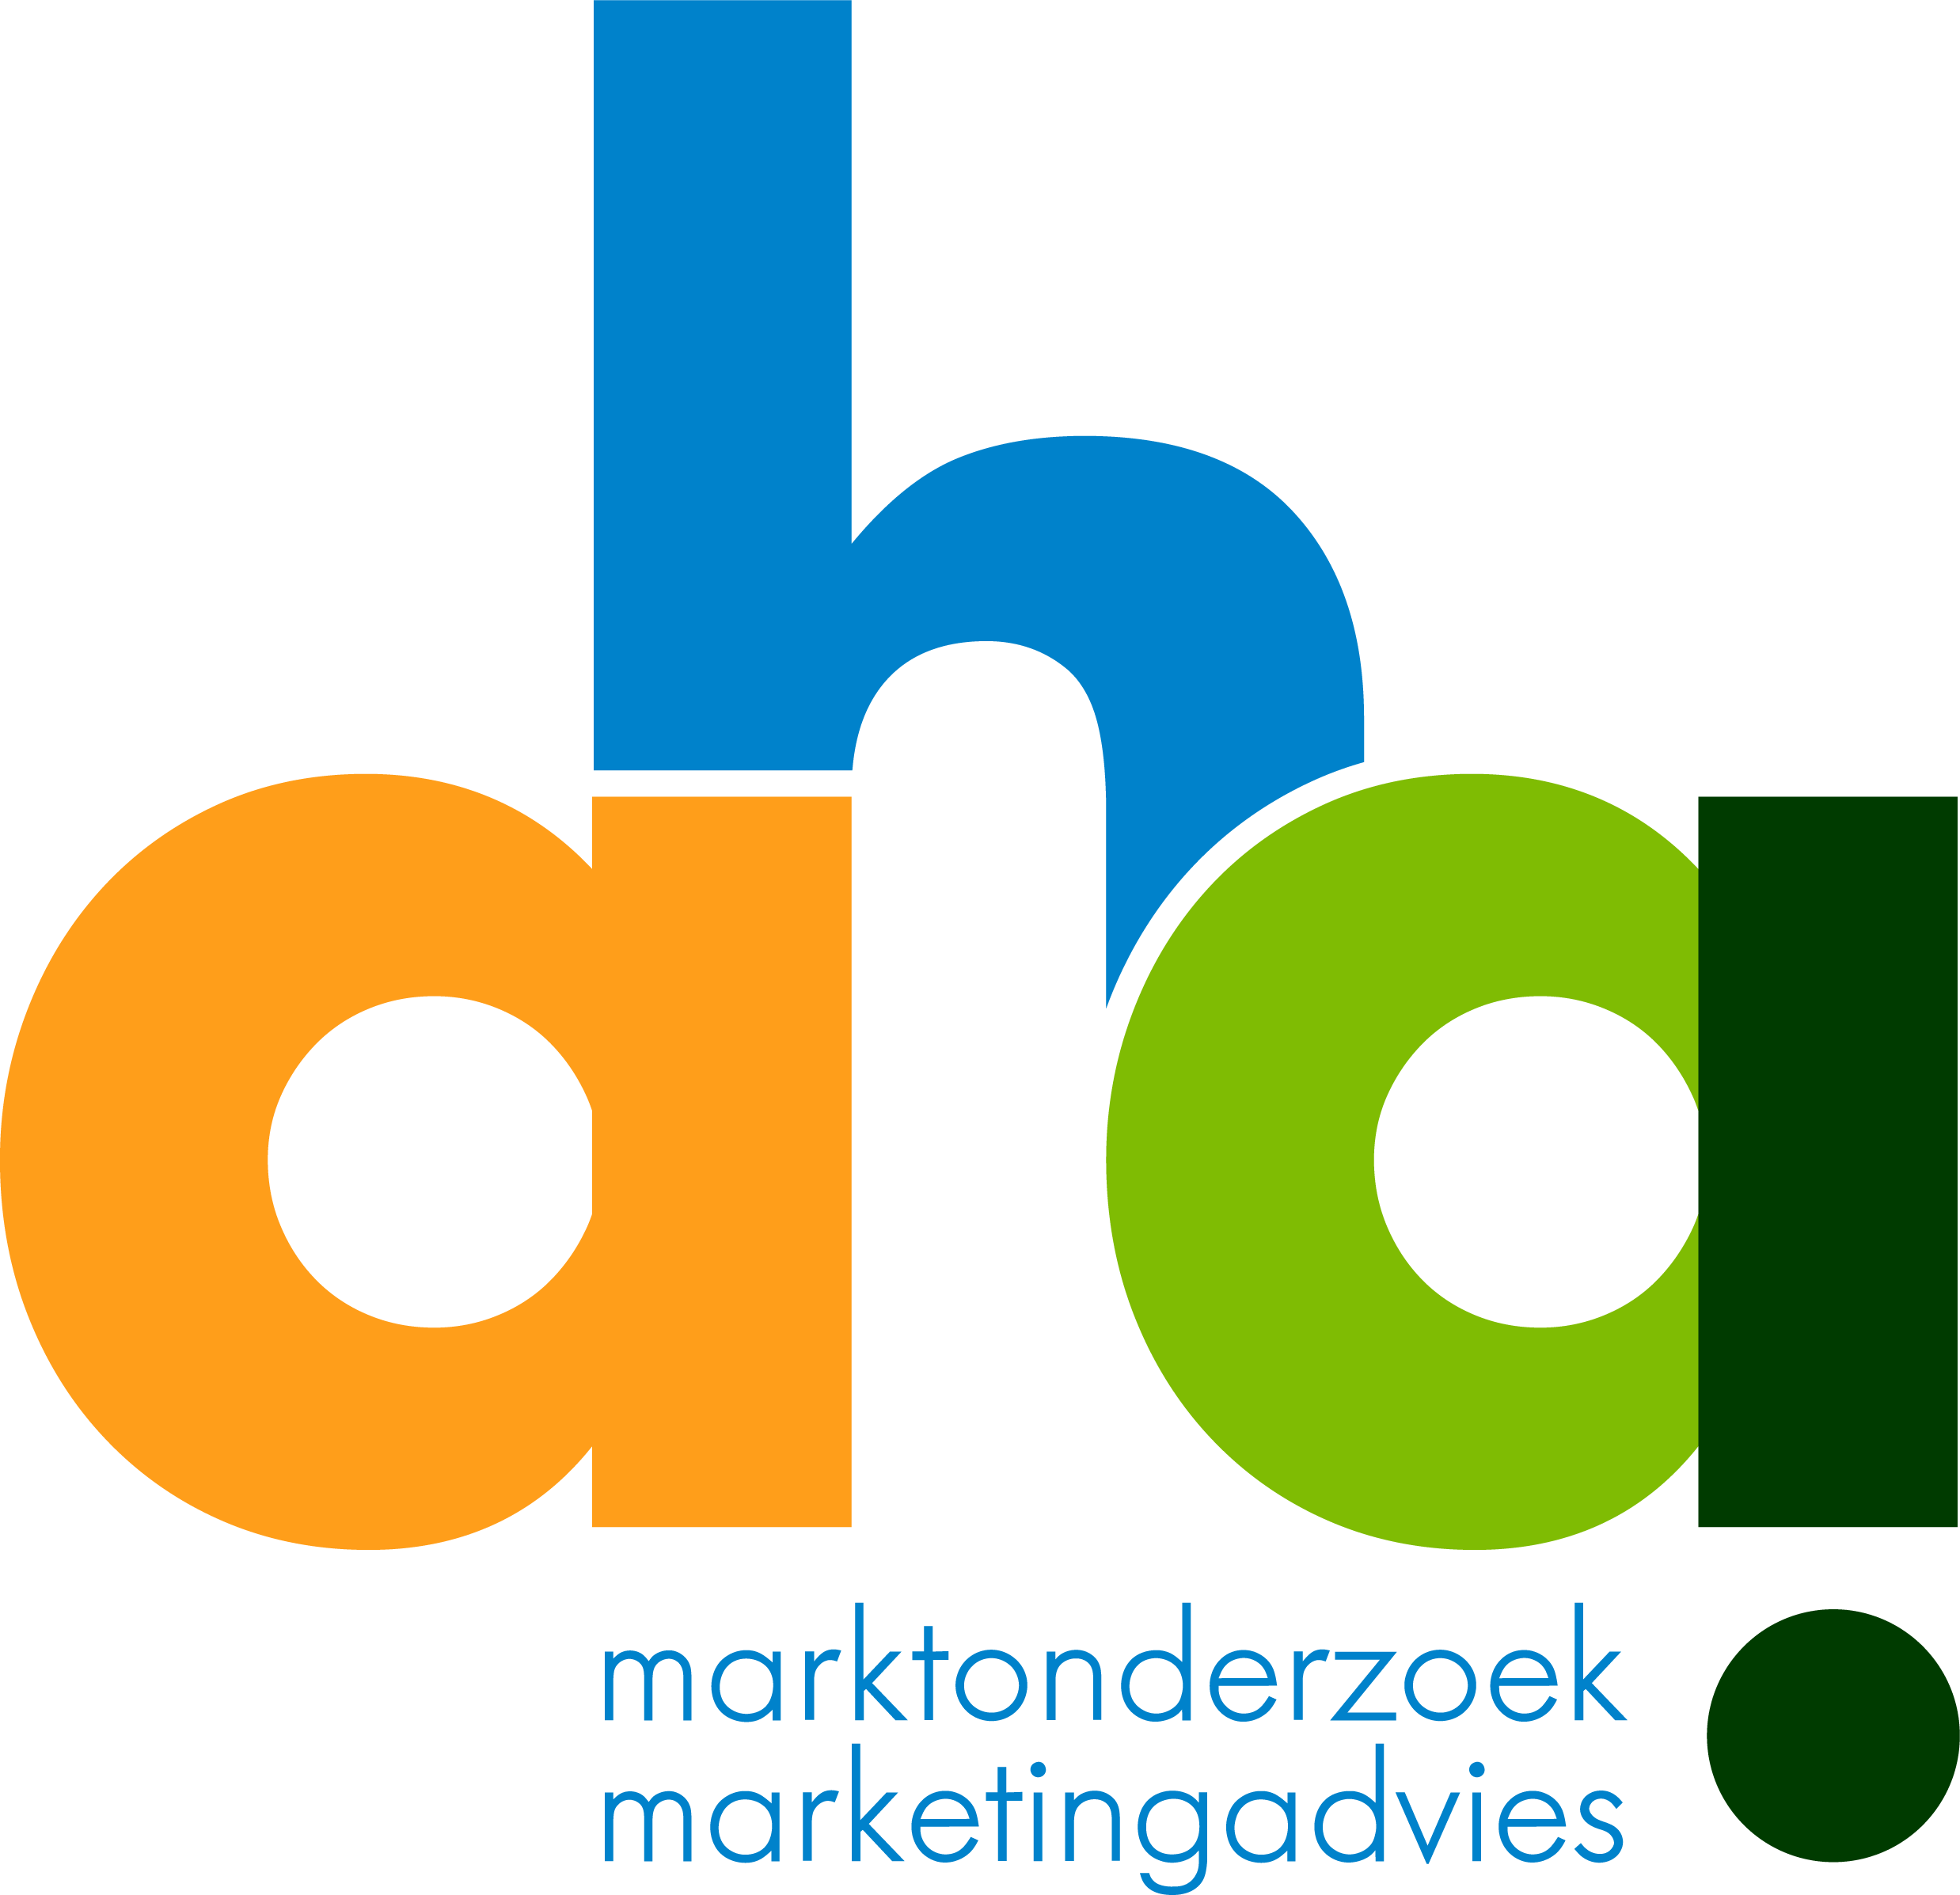 aha! marktonderzoek en marketingadvies